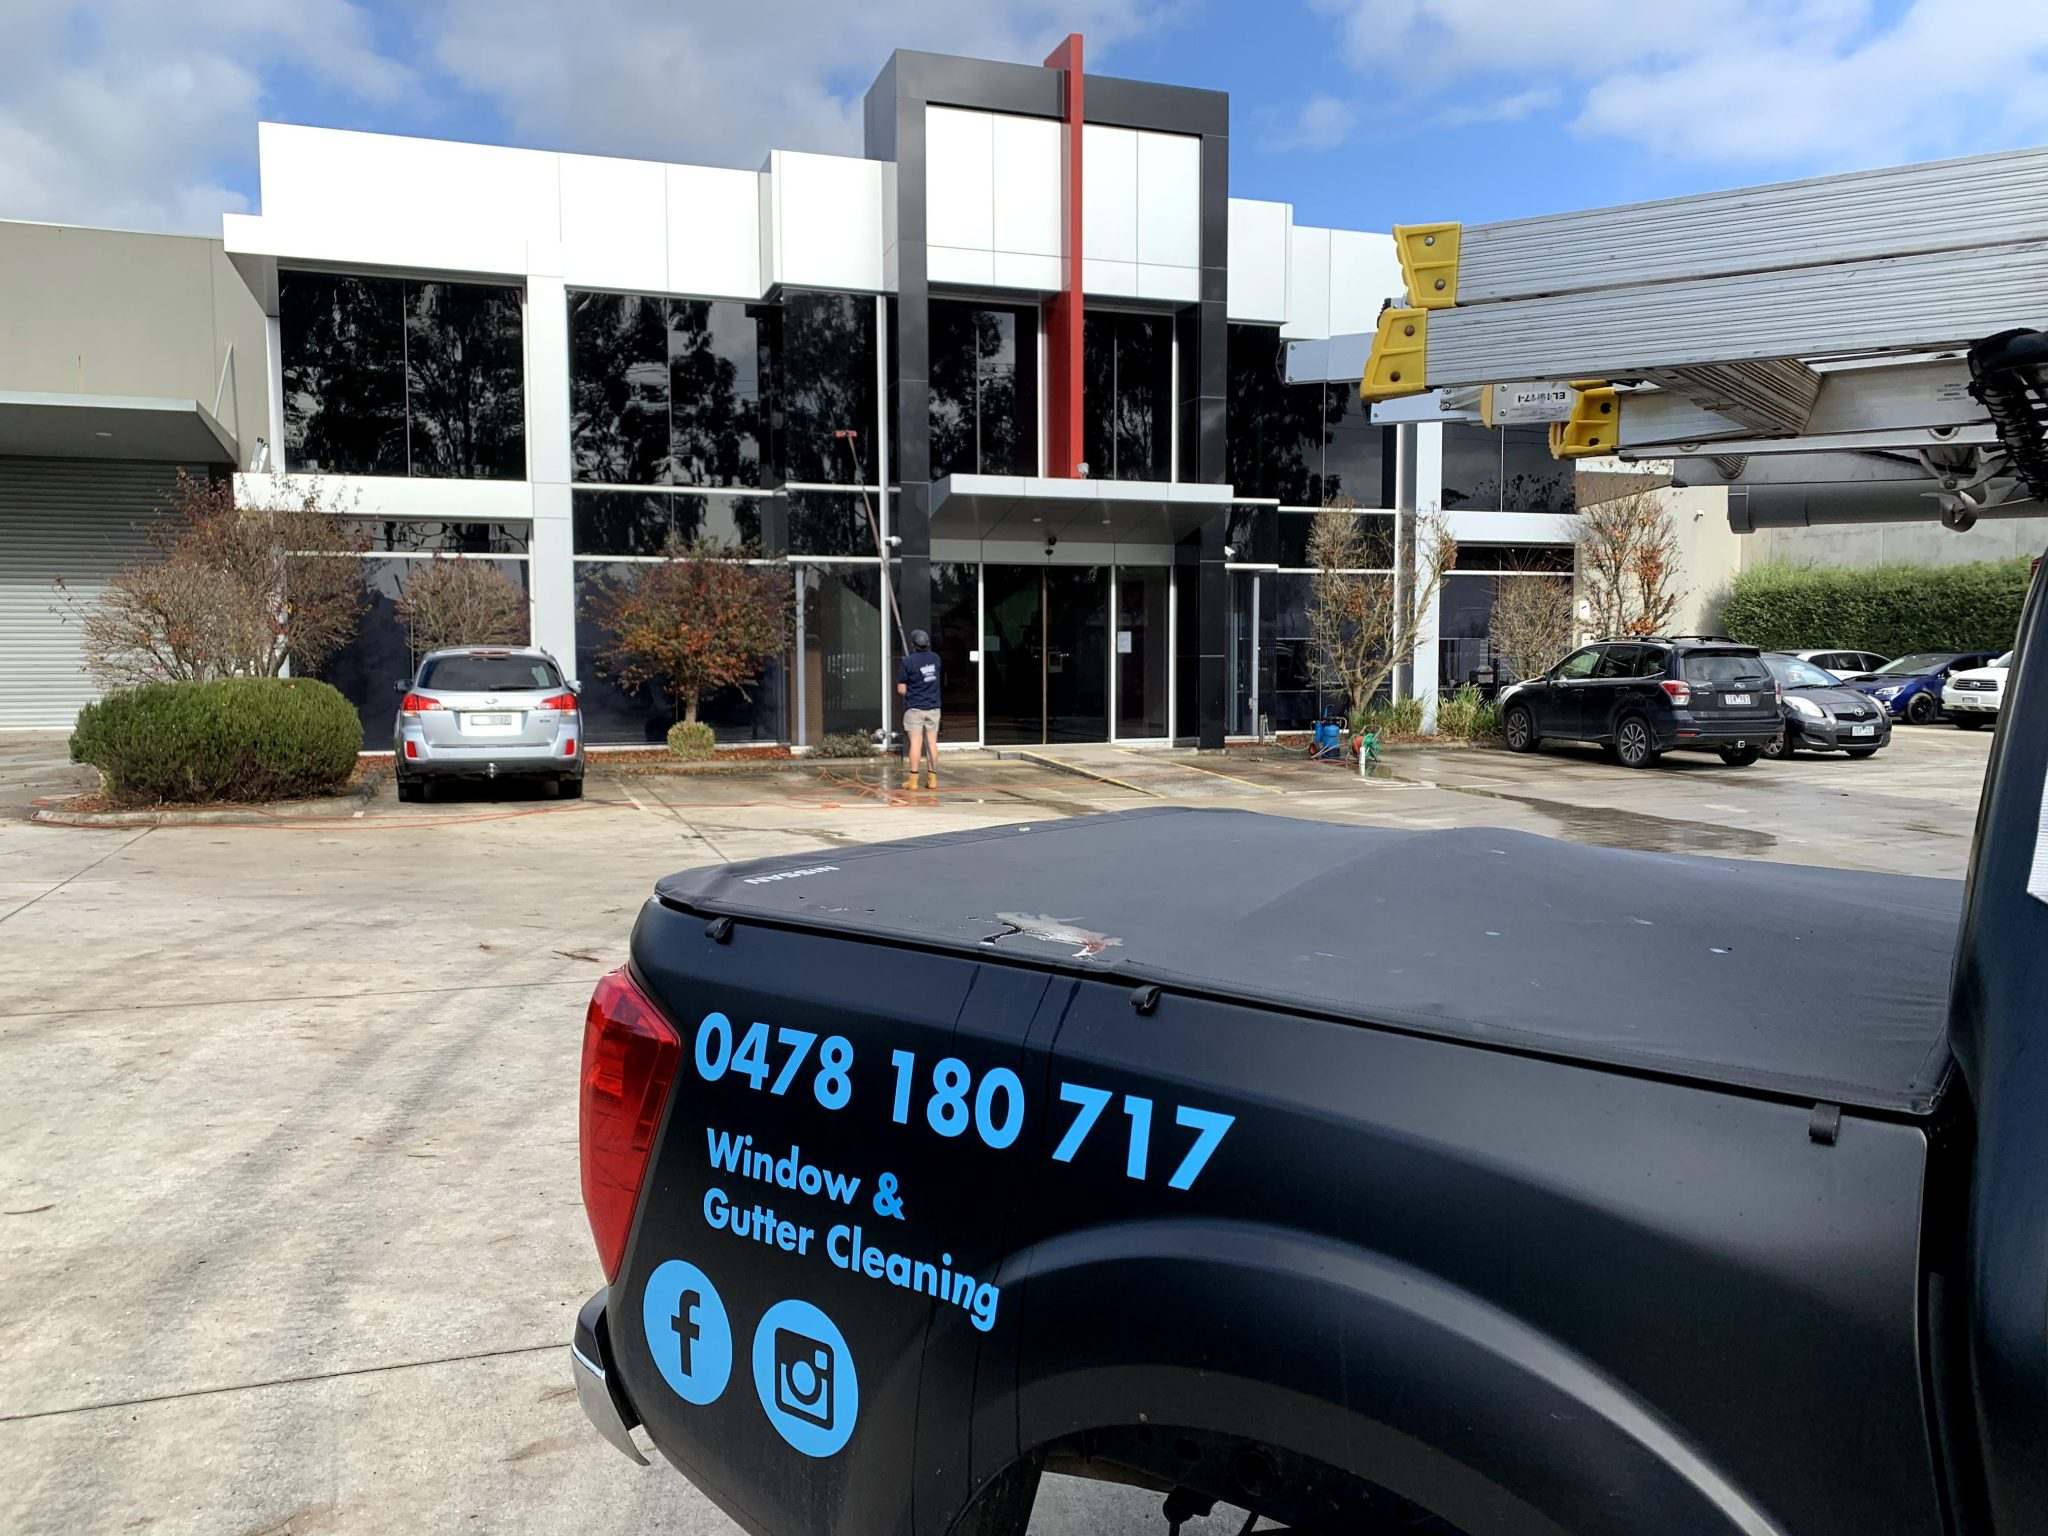 Window and Gutter Cleaning business has a sign written car parked in front of a commercial building in the Yarra Valley